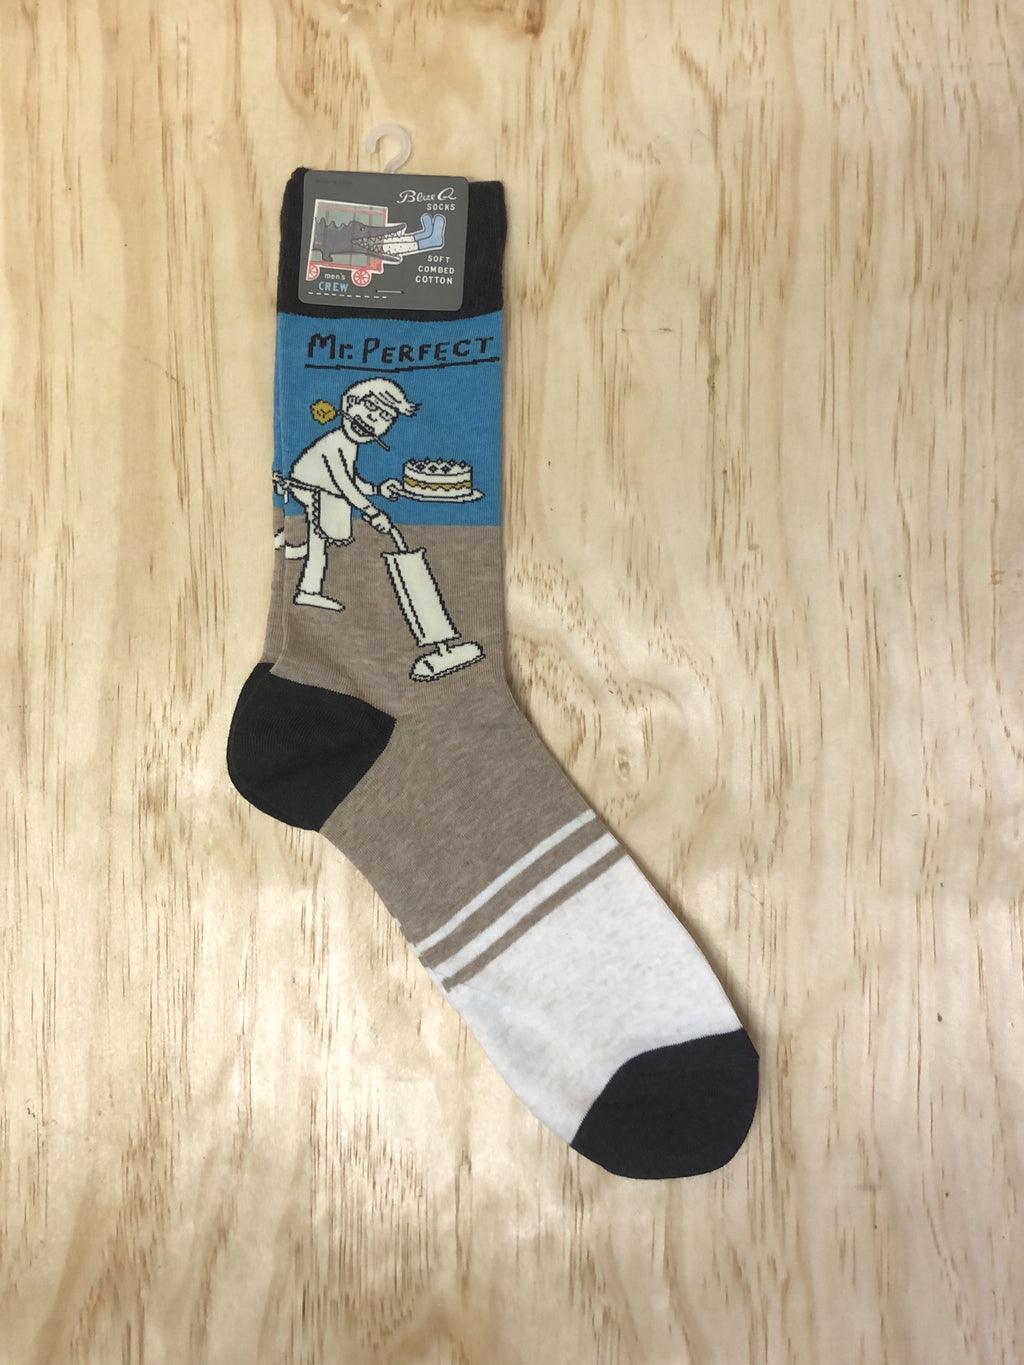 Mr. Perfect Socks